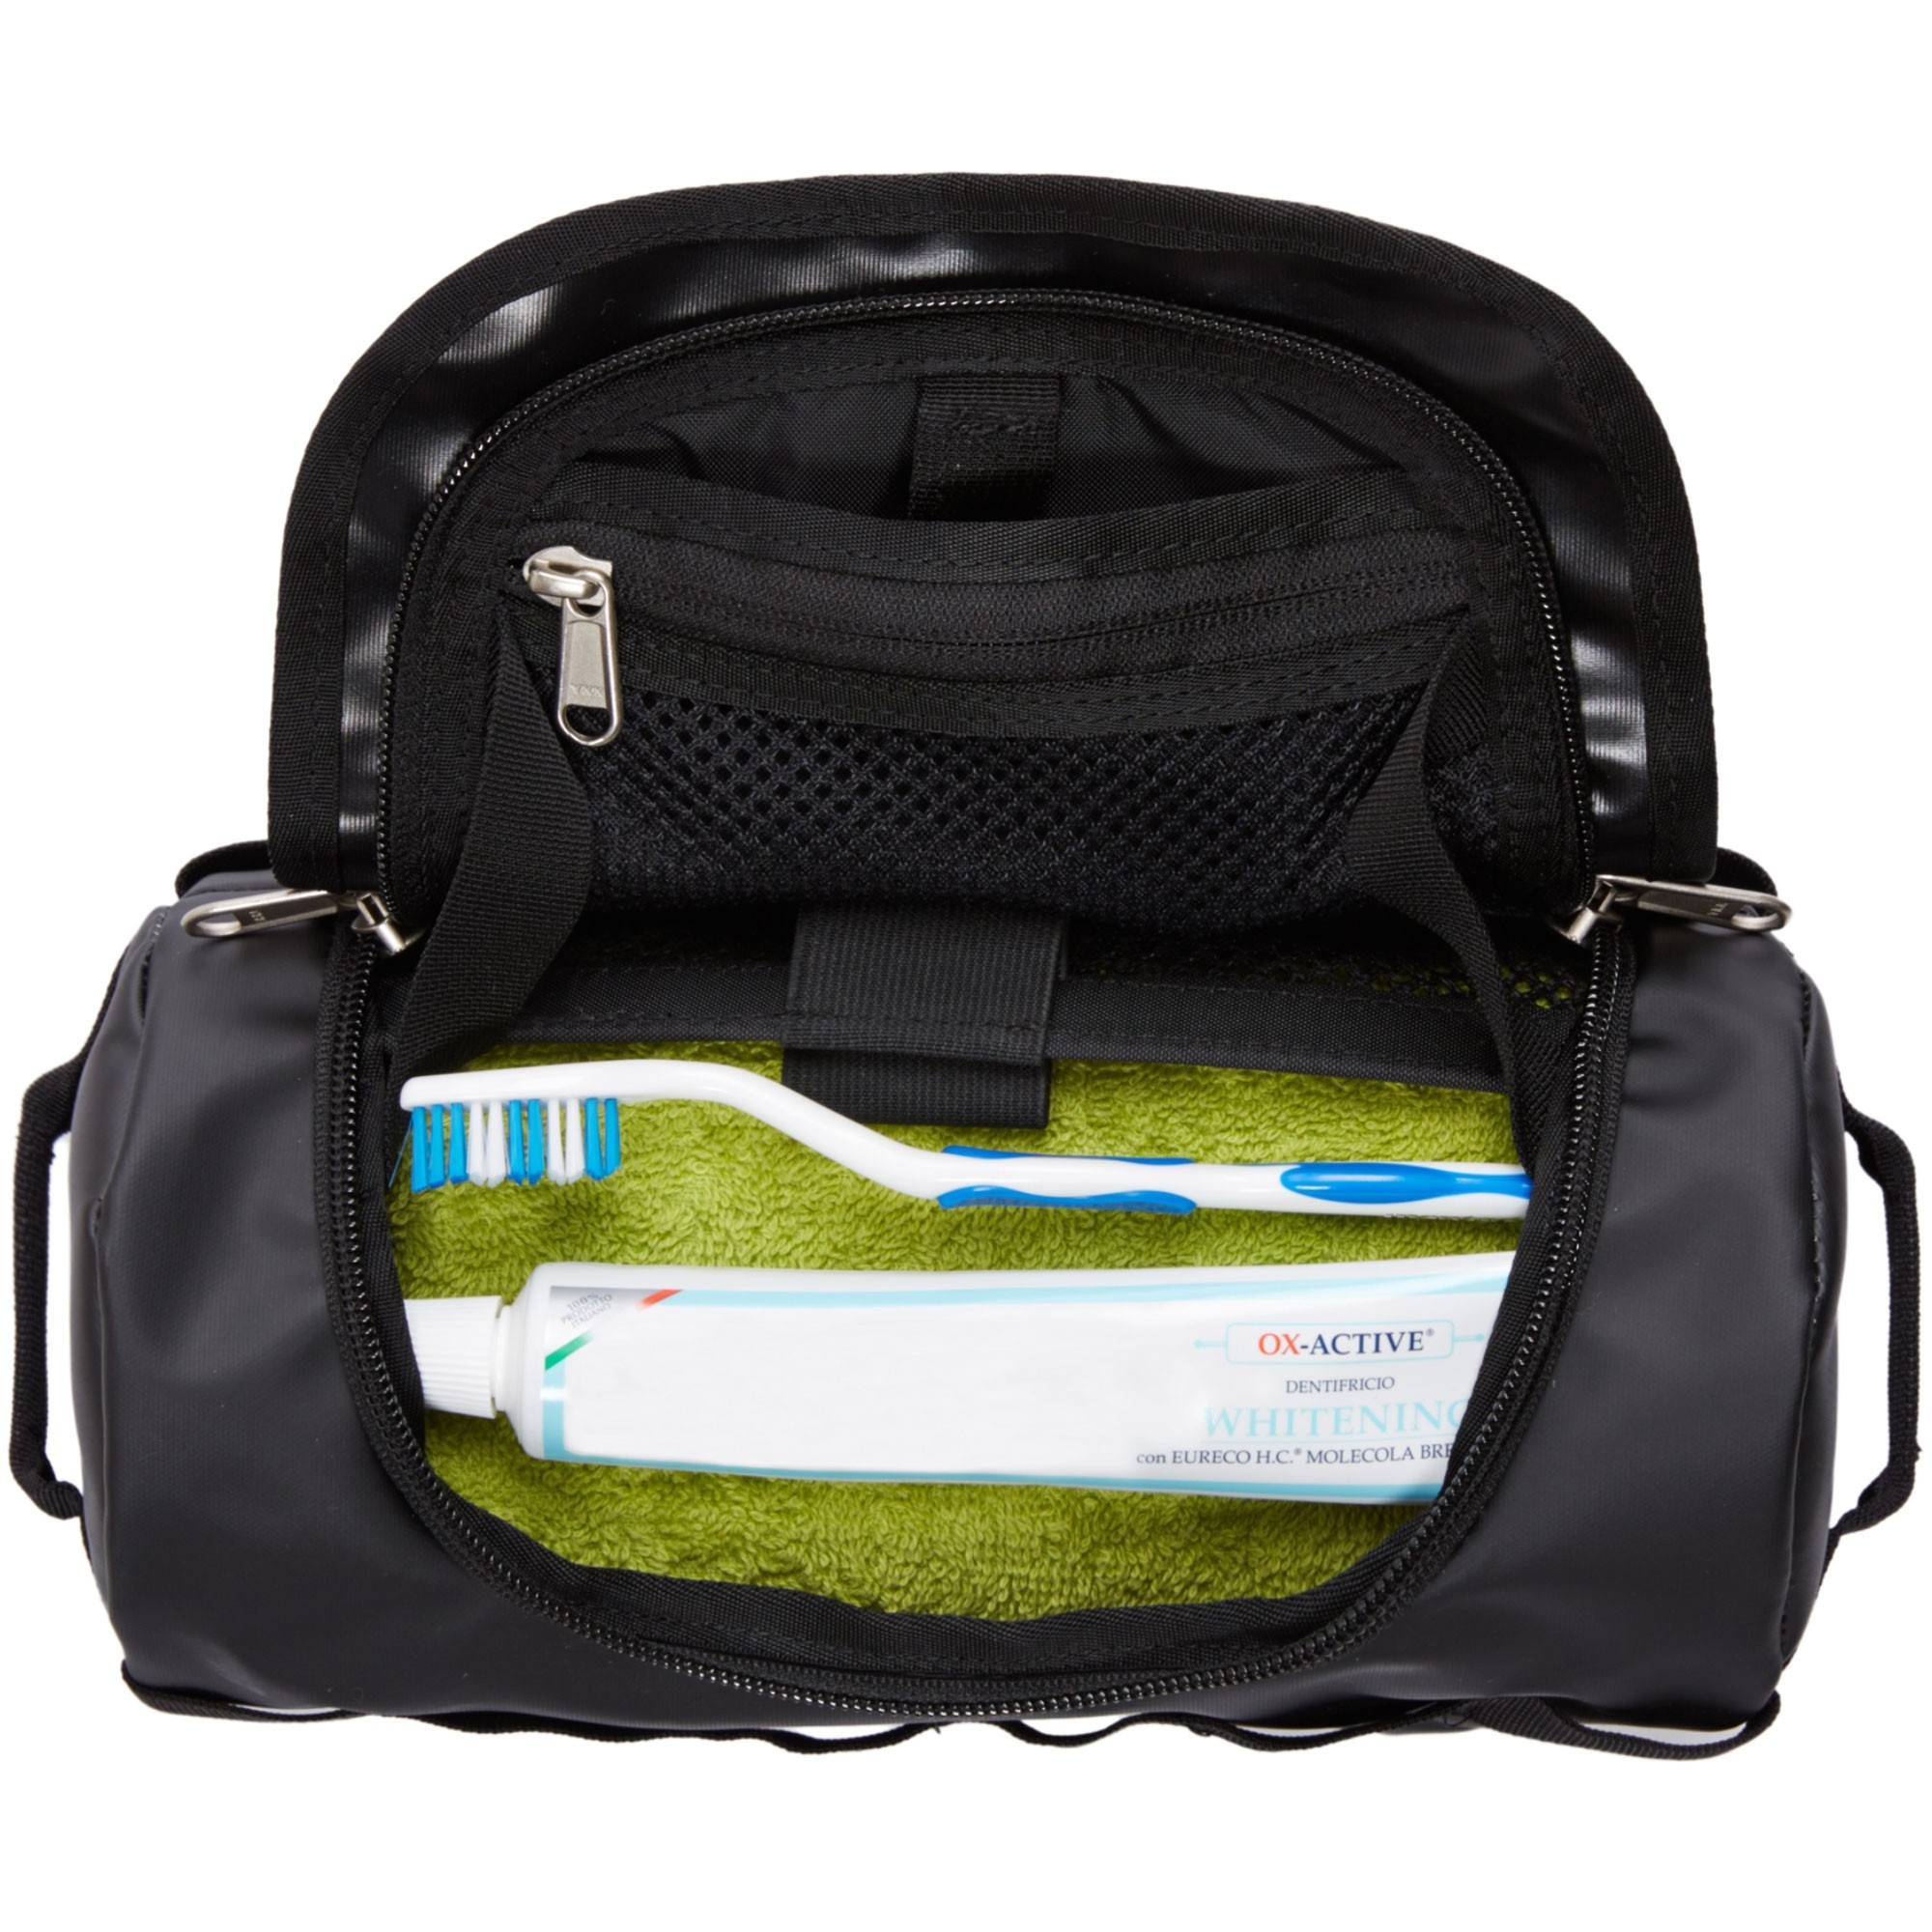 TNF Base Camp Travel Canister Small - TNF Black - packed